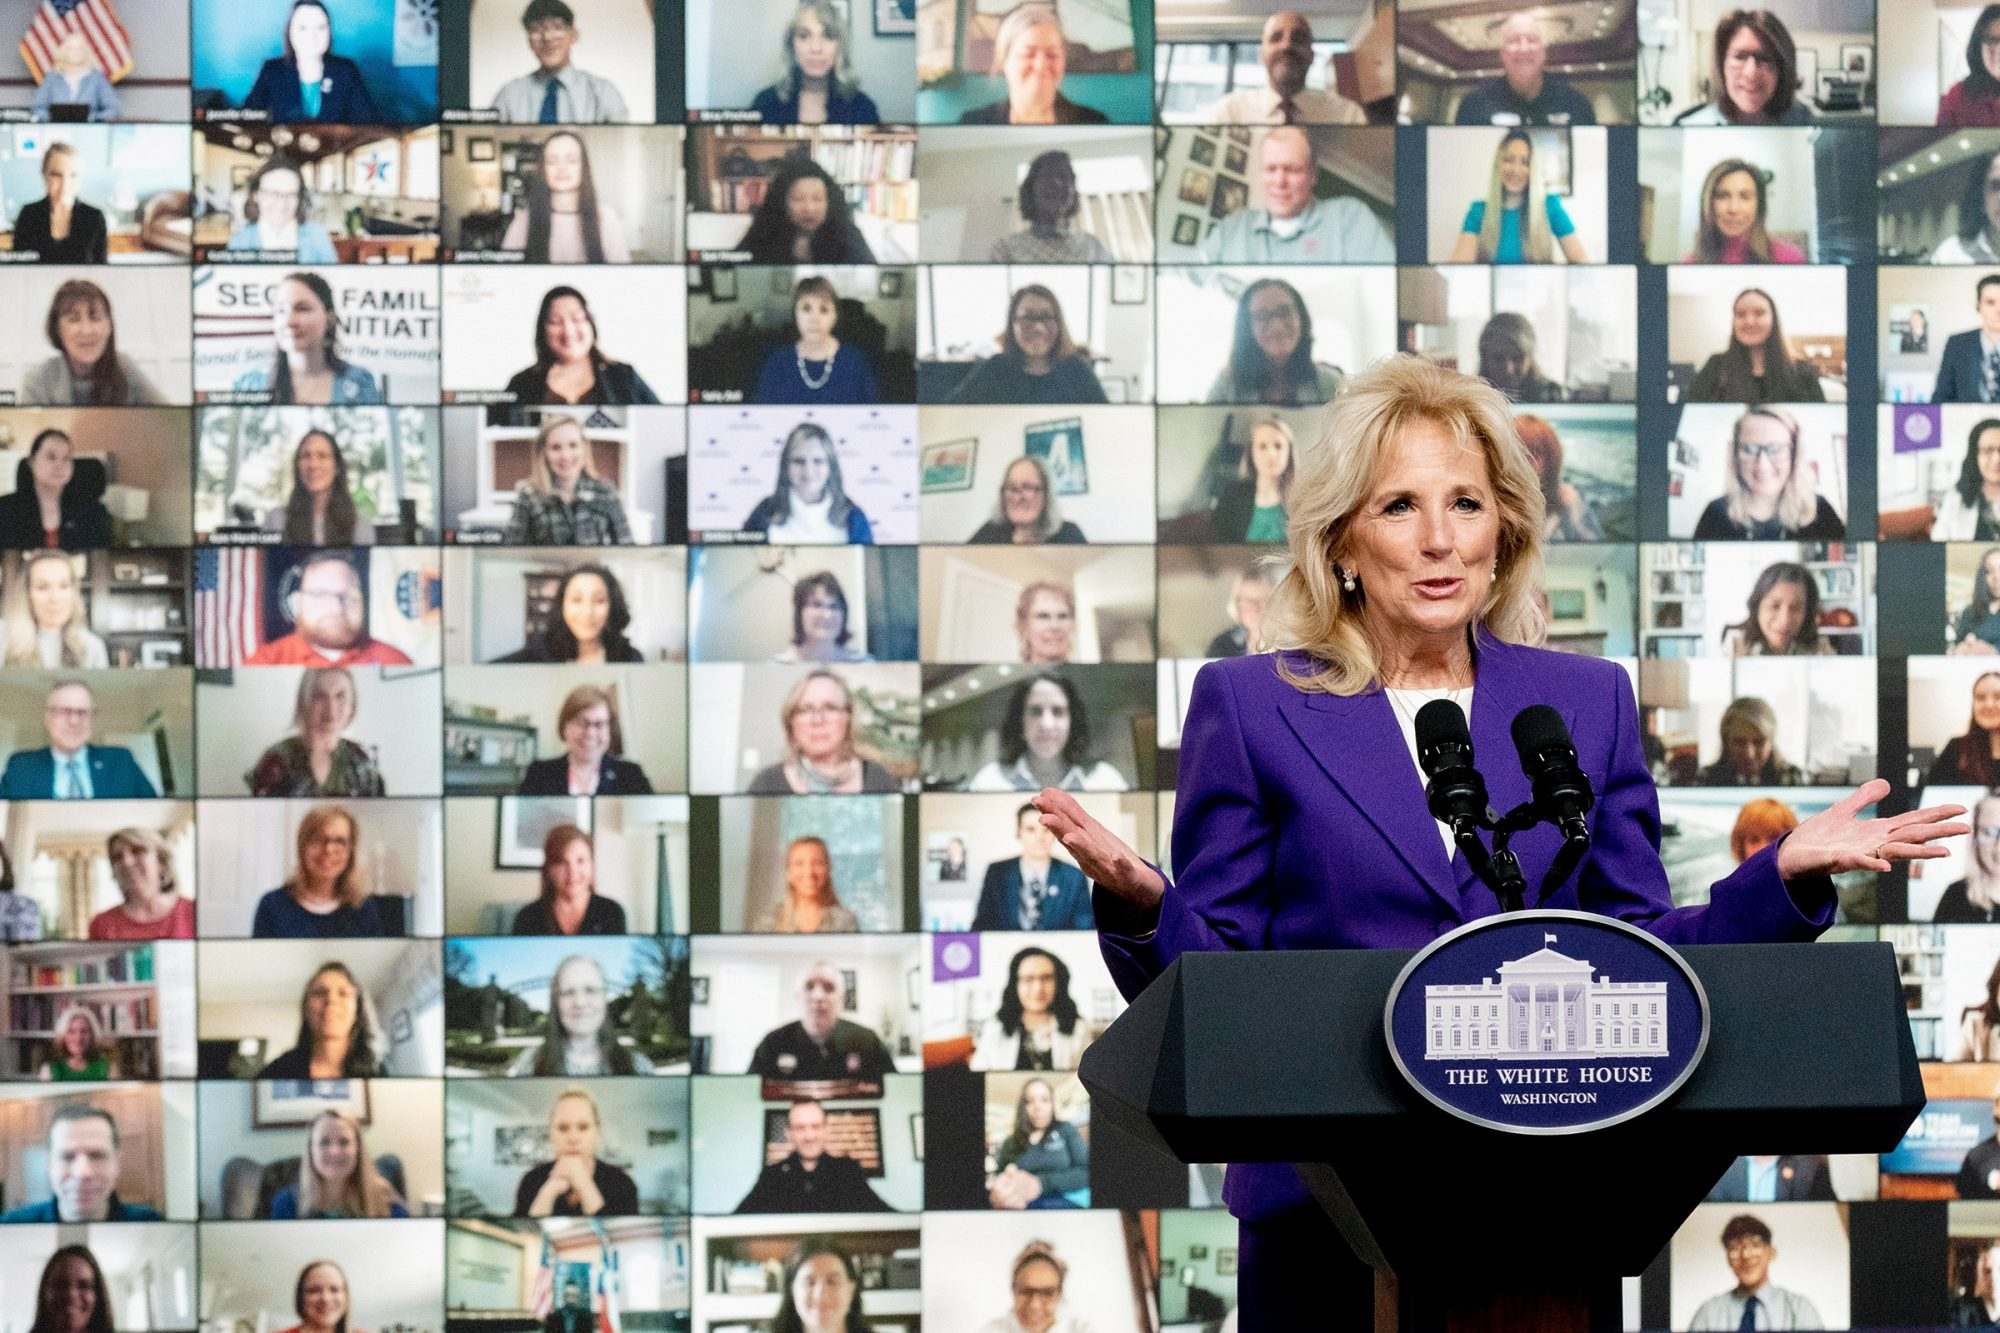 First lady Jill Biden speaks at a virtual event with military families from around the world as part of the White House initiative to support military and veteran families in the South Court Auditorium in the Eisenhower Executive Office Building on the White House Campus, in Washington